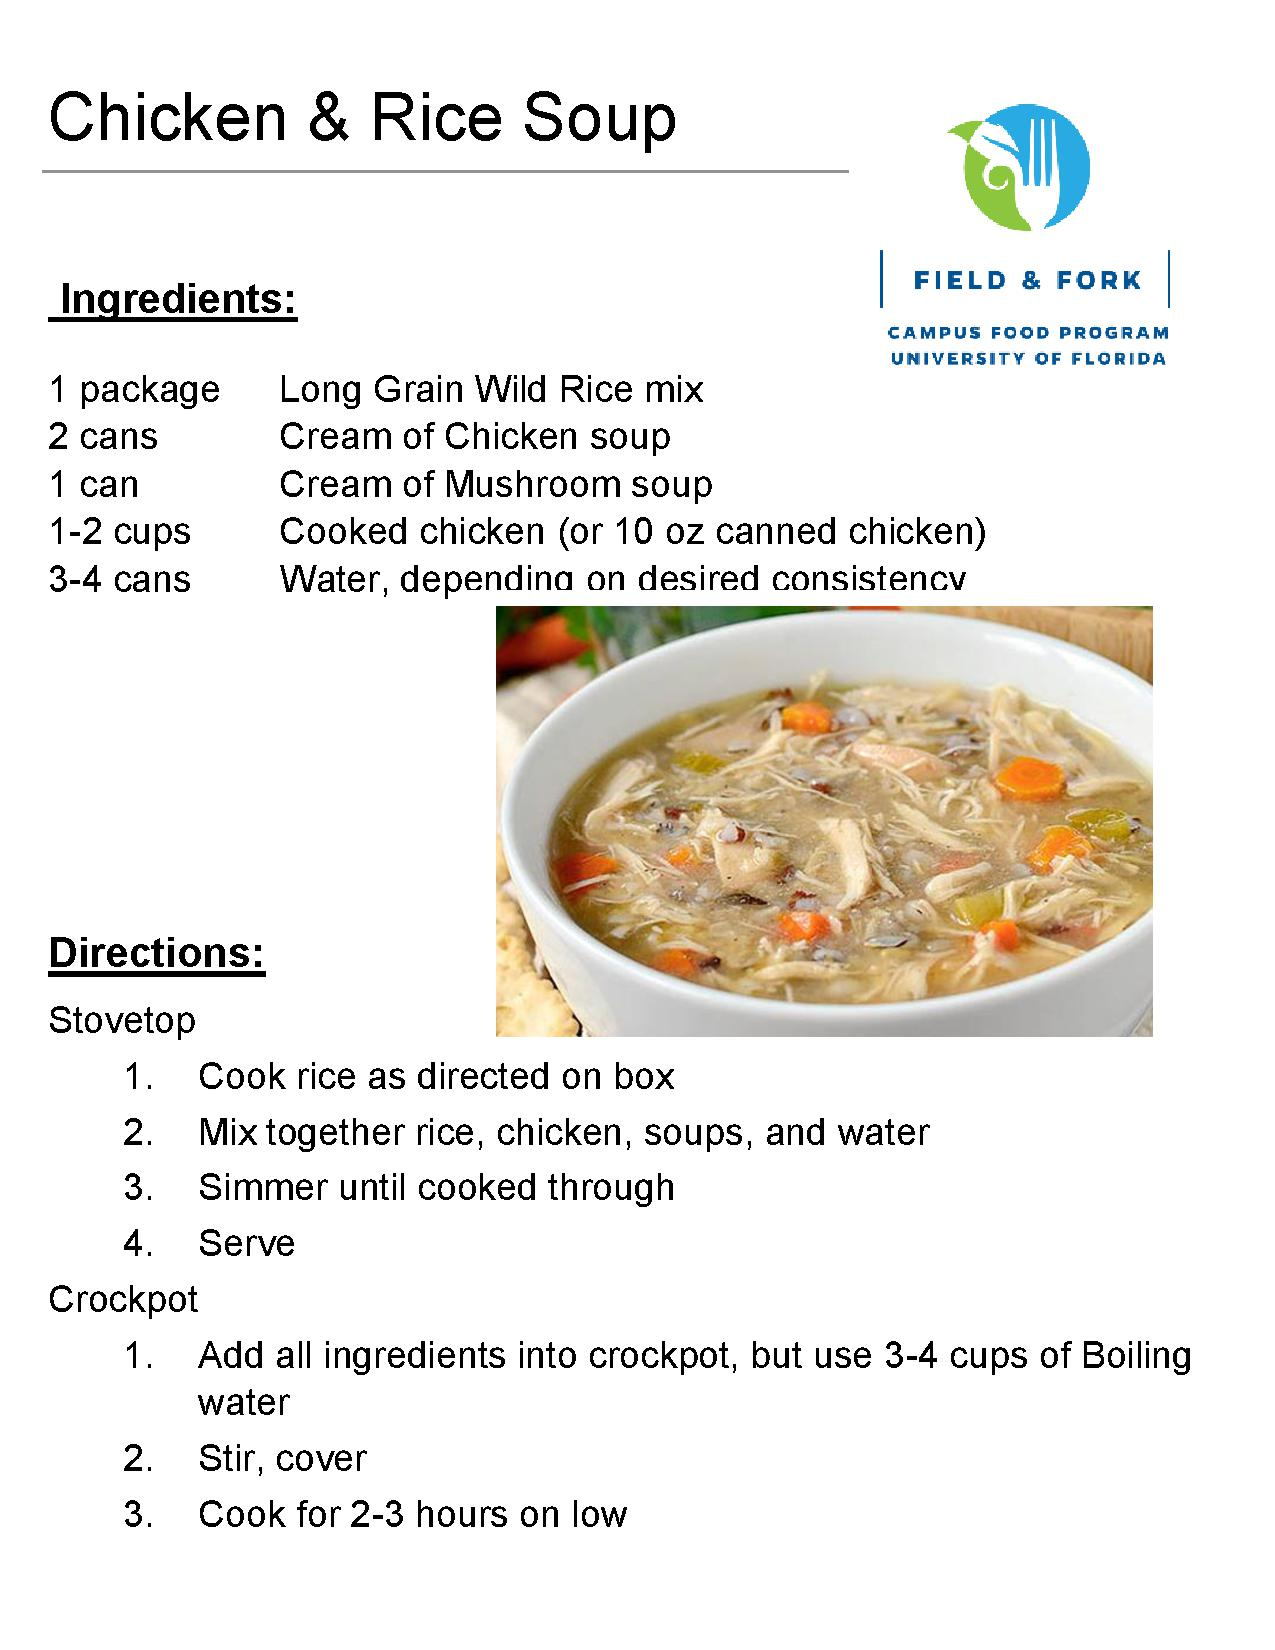 Recipes the pantry download the chicken and rice soup recipe in pdf forumfinder Image collections